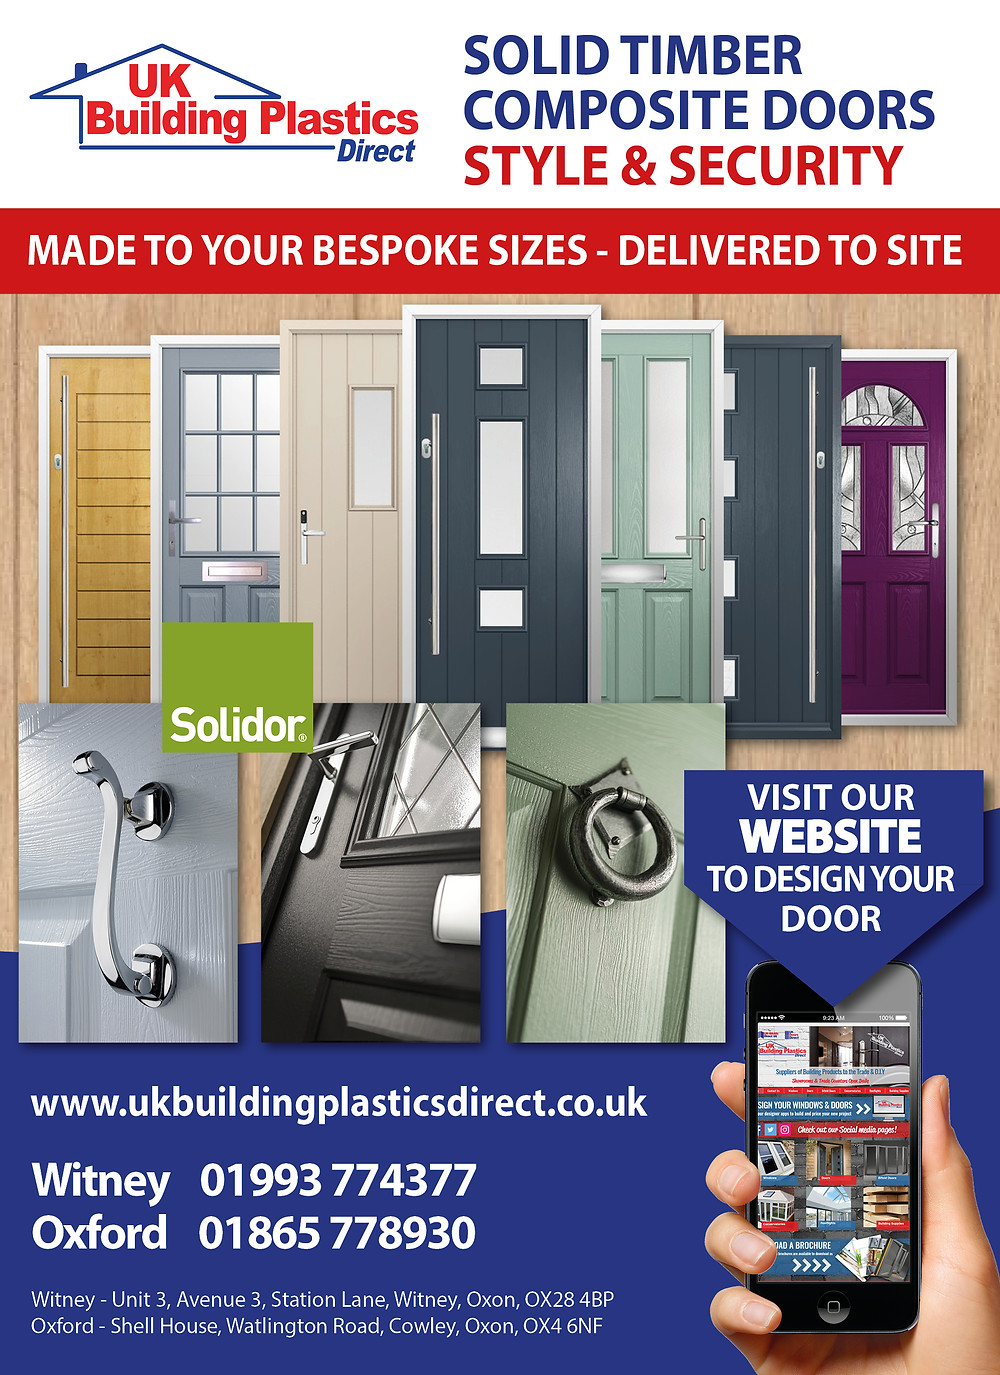 Solidor composite door - UK Building Plastics Direct - Witney - Cowley